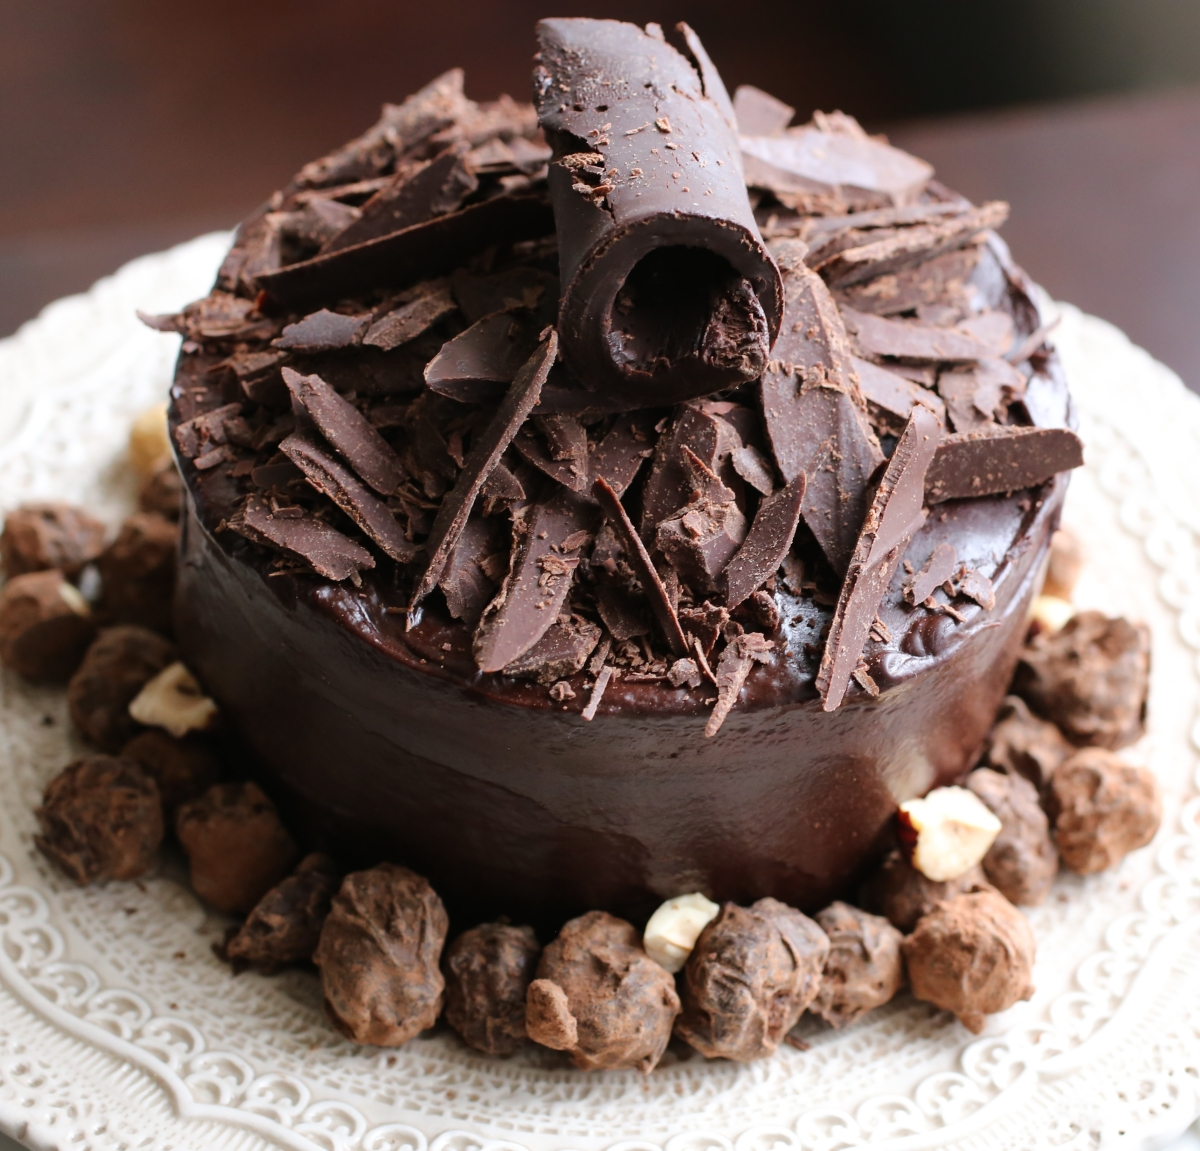 Chocolate-Hazelnut Cake